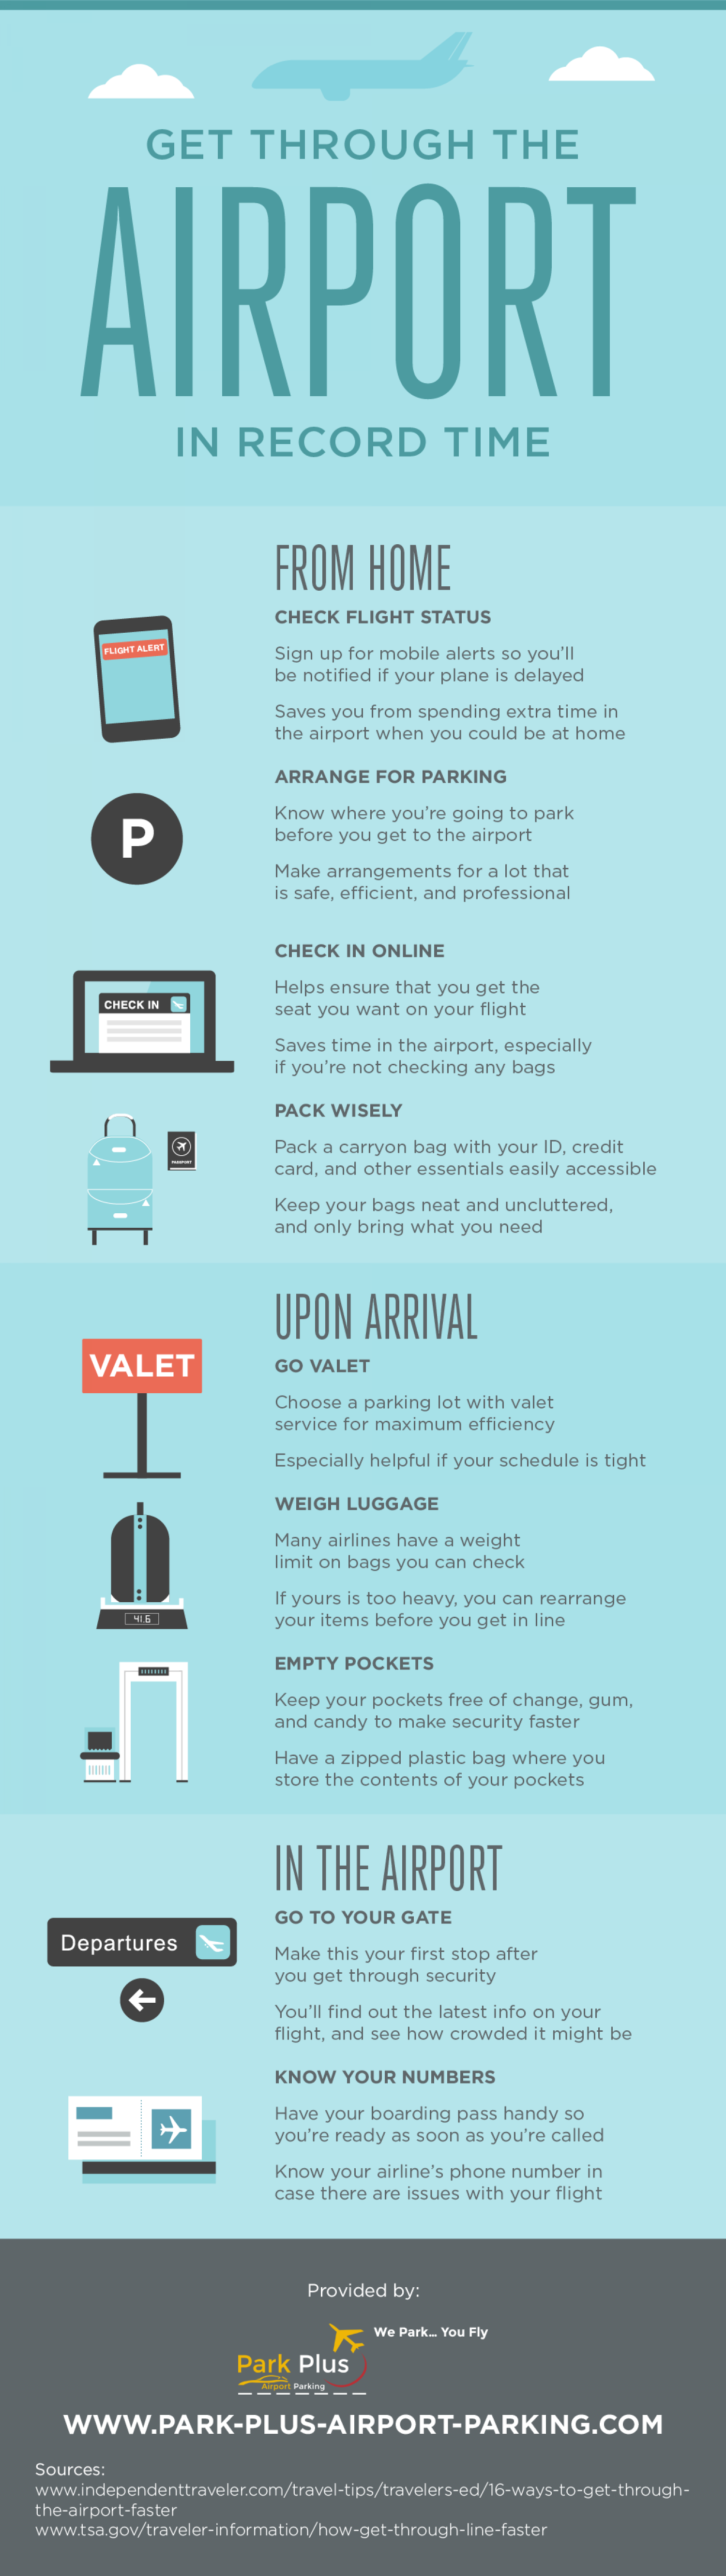 Get Through the Airport in Record Time Infographic